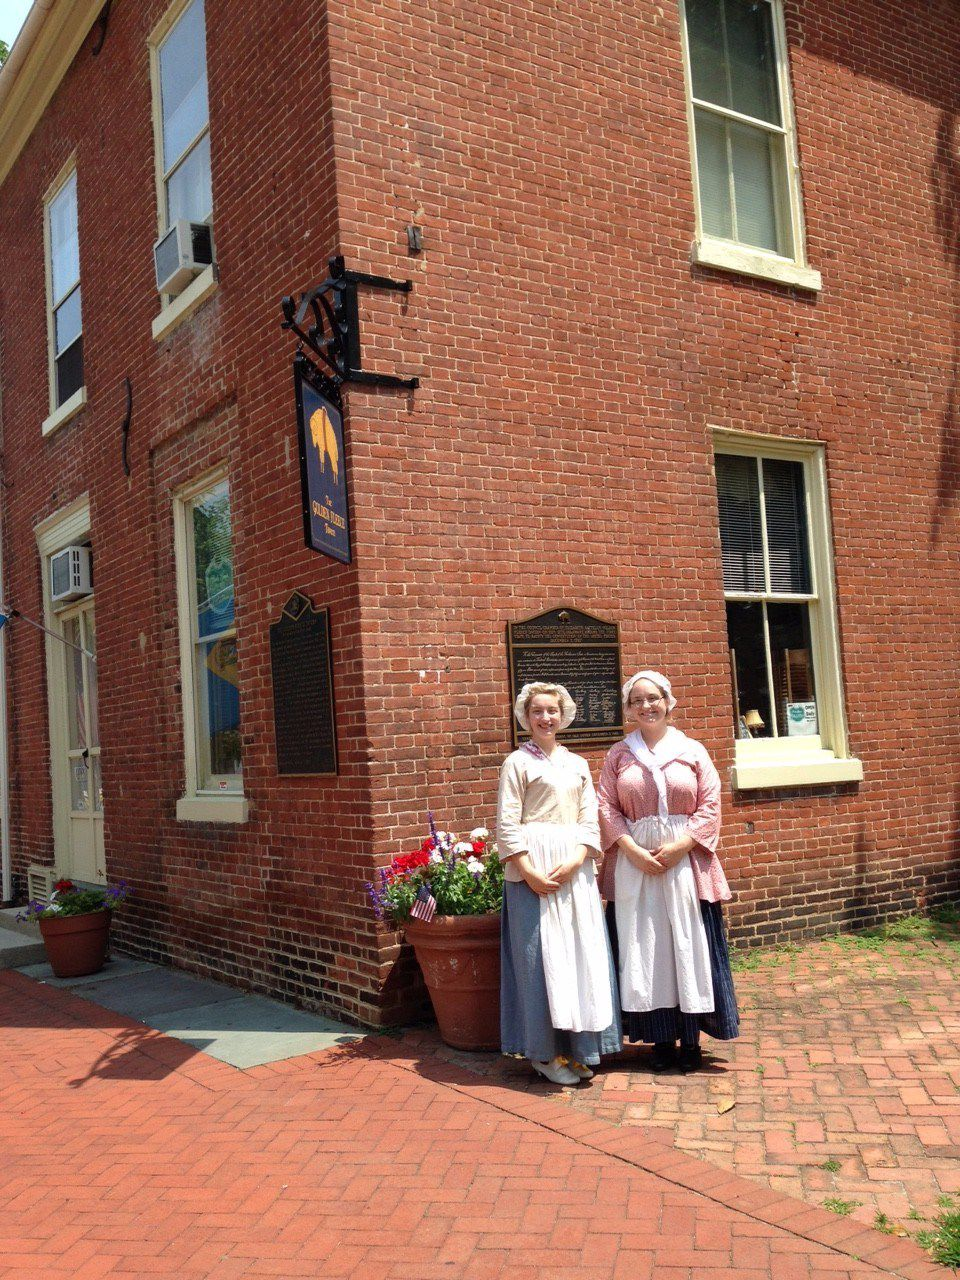 Planning your next day trip? Try Dover, Delaware